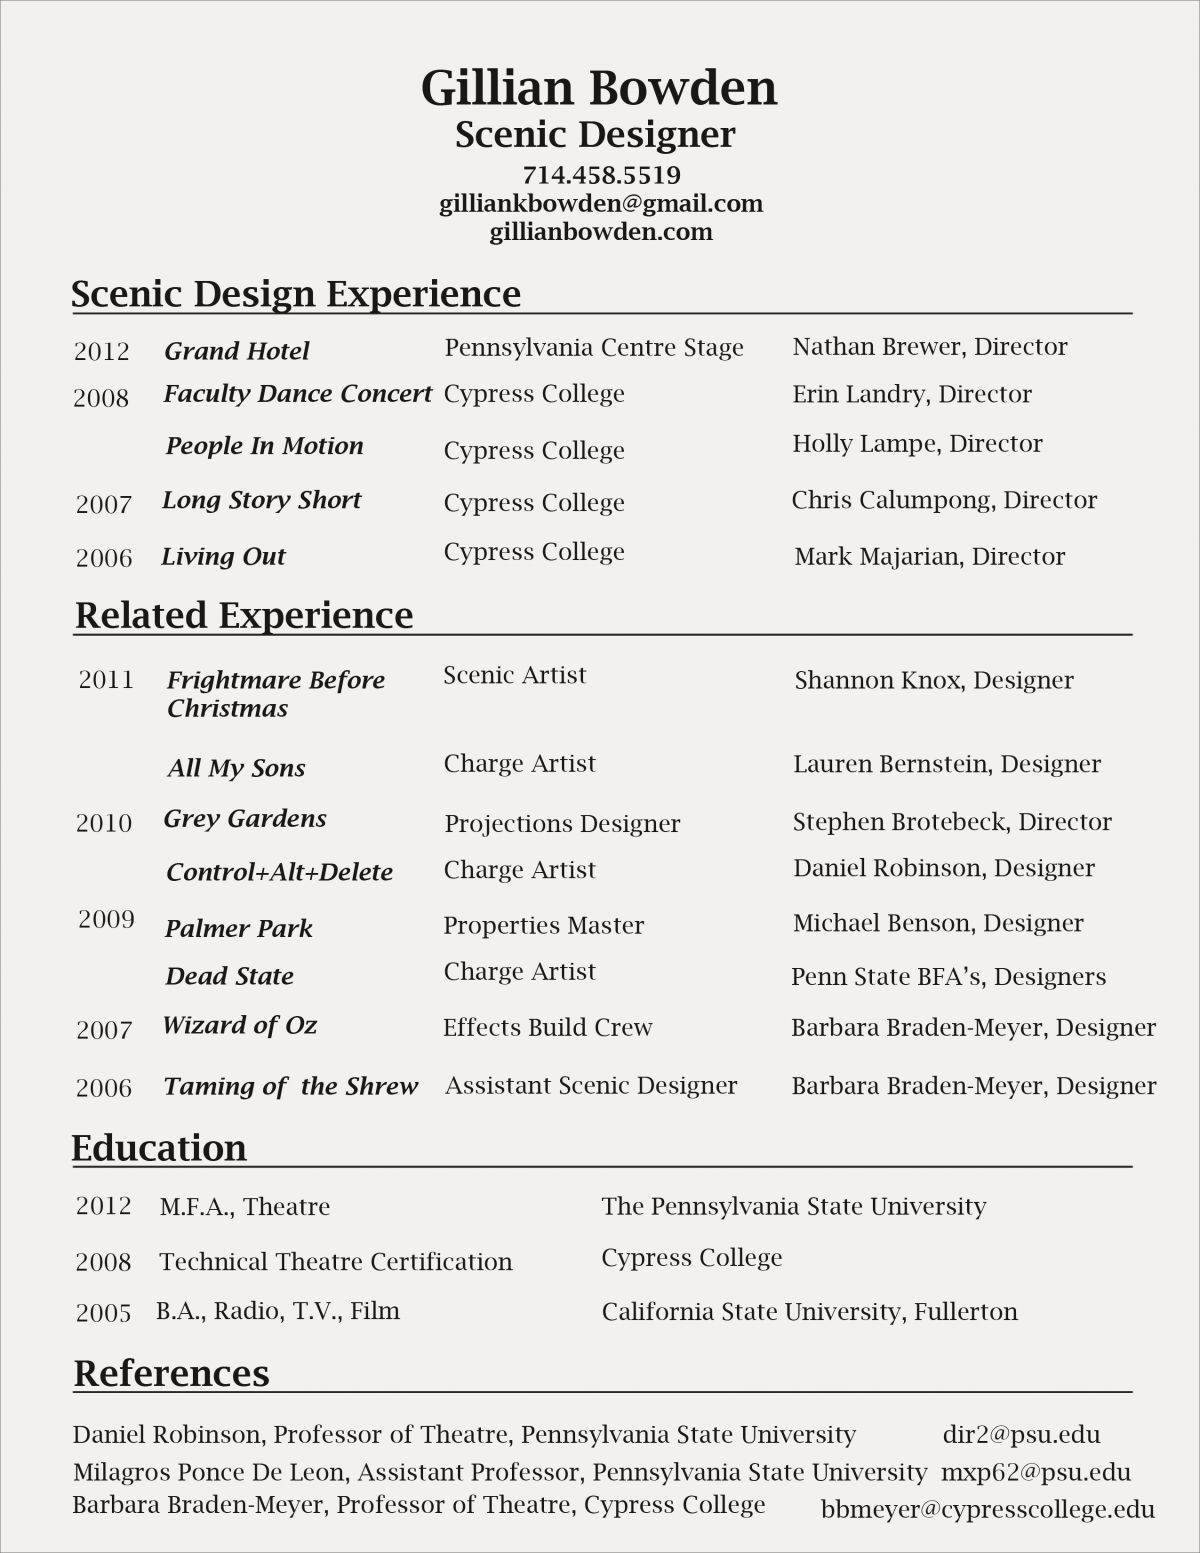 Education Section Of Resume - 33 Fresh Resume Education Section Chart Stock